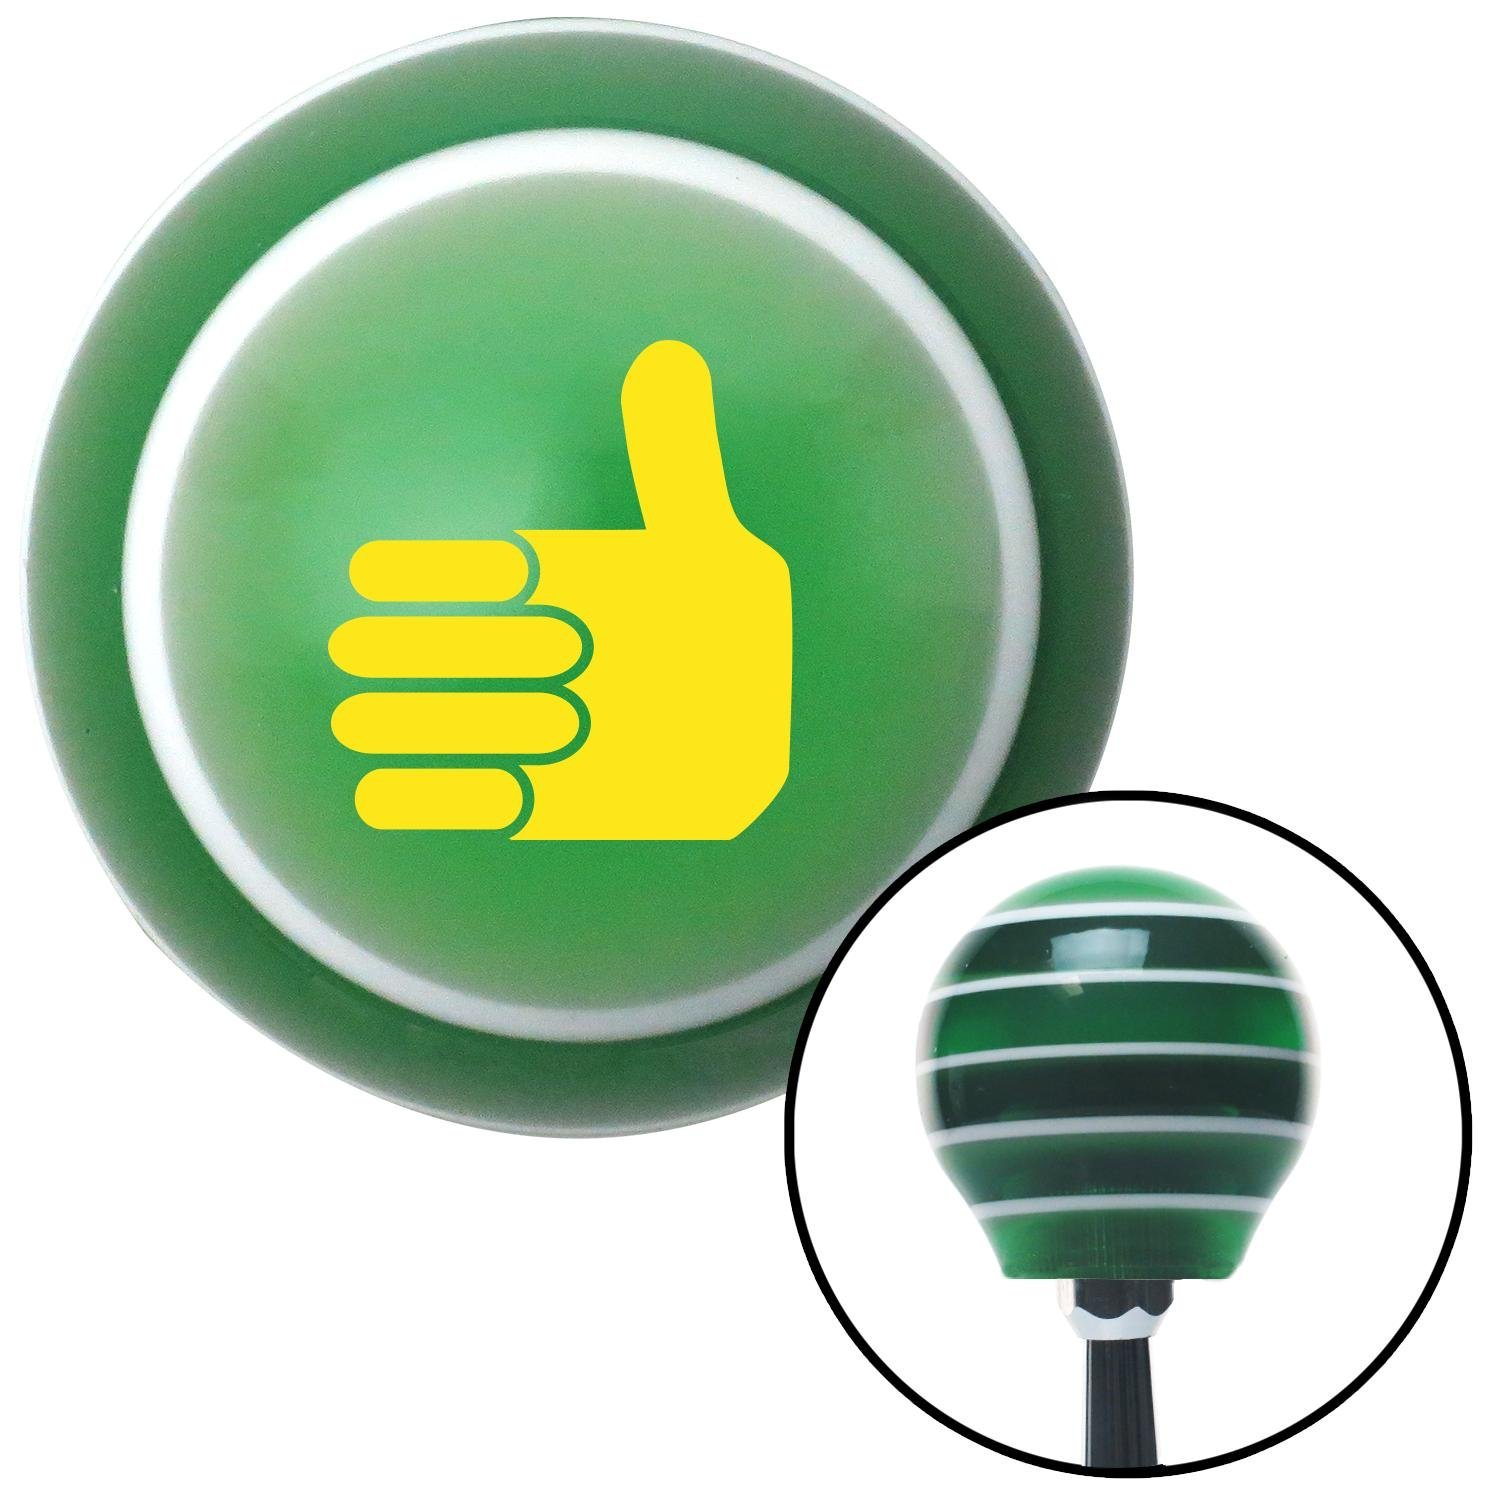 American Shifter 122658 Green Stripe Shift Knob with M16 x 1.5 Insert Yellow Thumbs Up